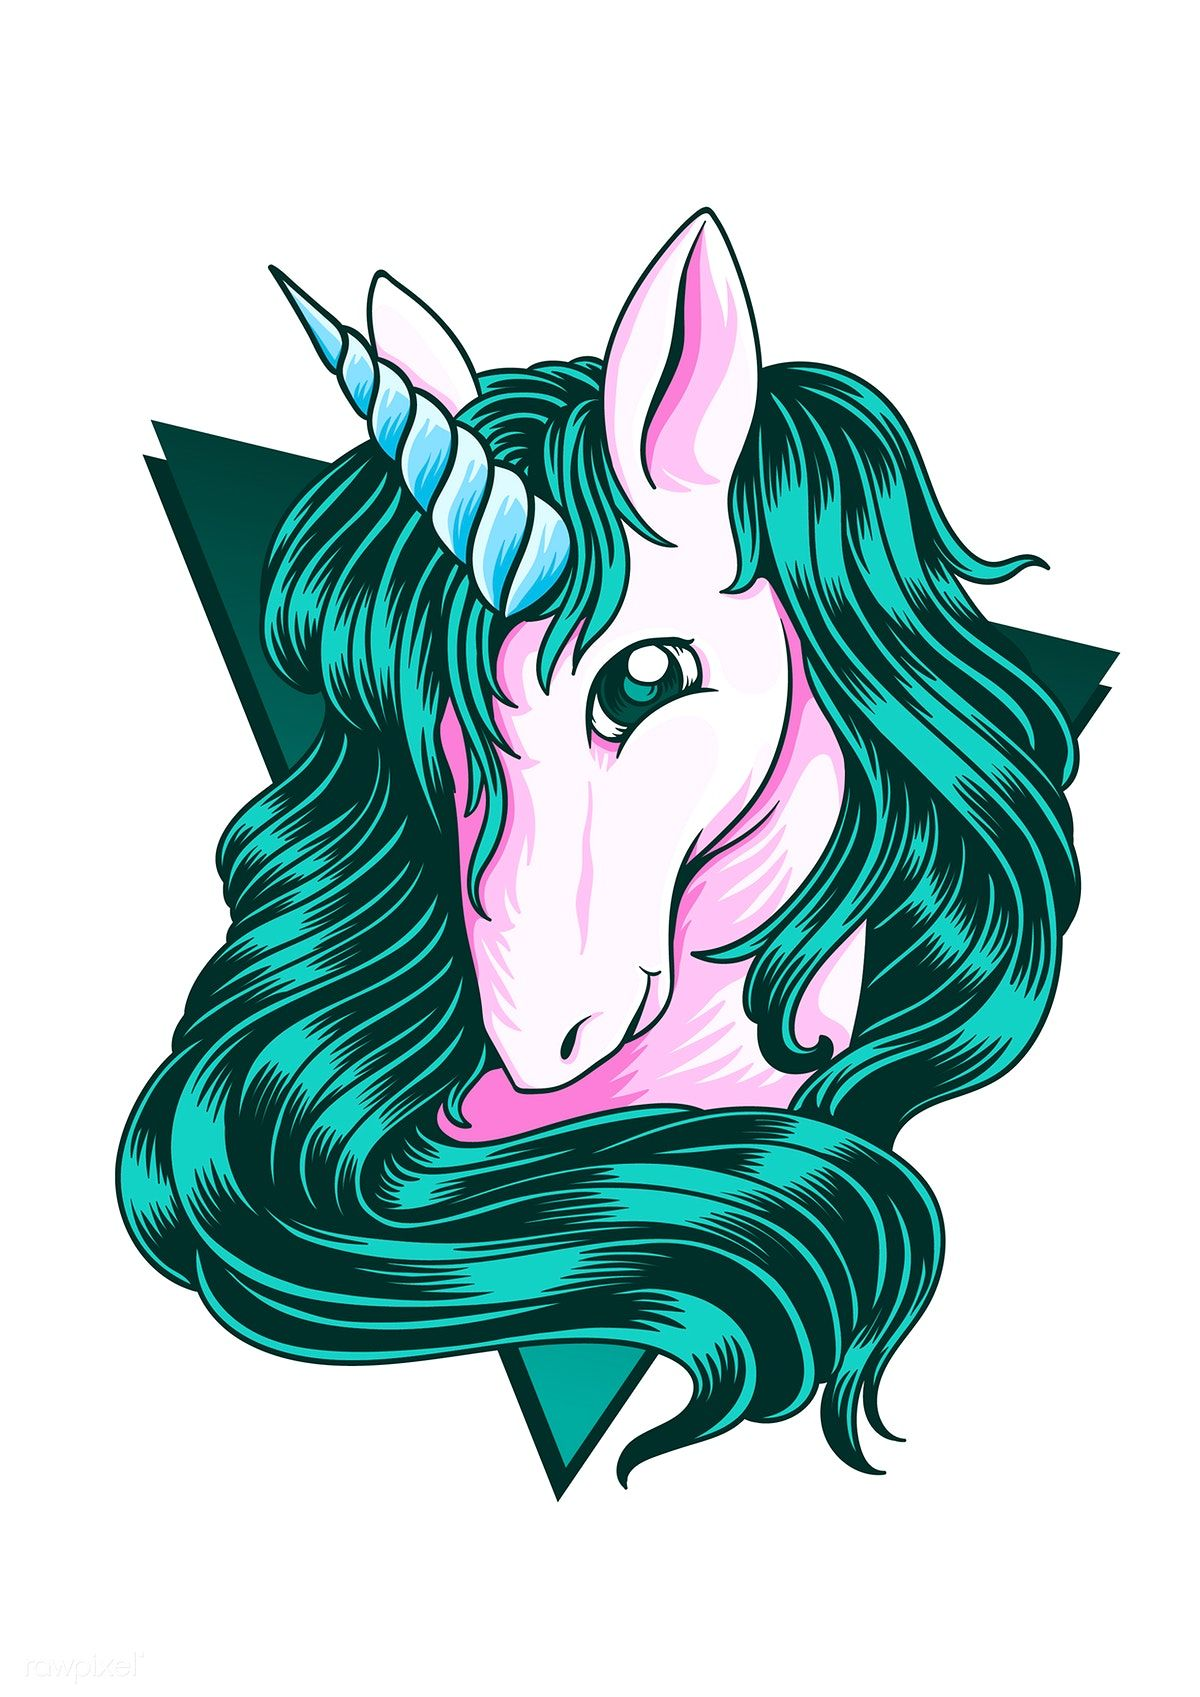 Download premium vector of Cute unicorn stylized drawing